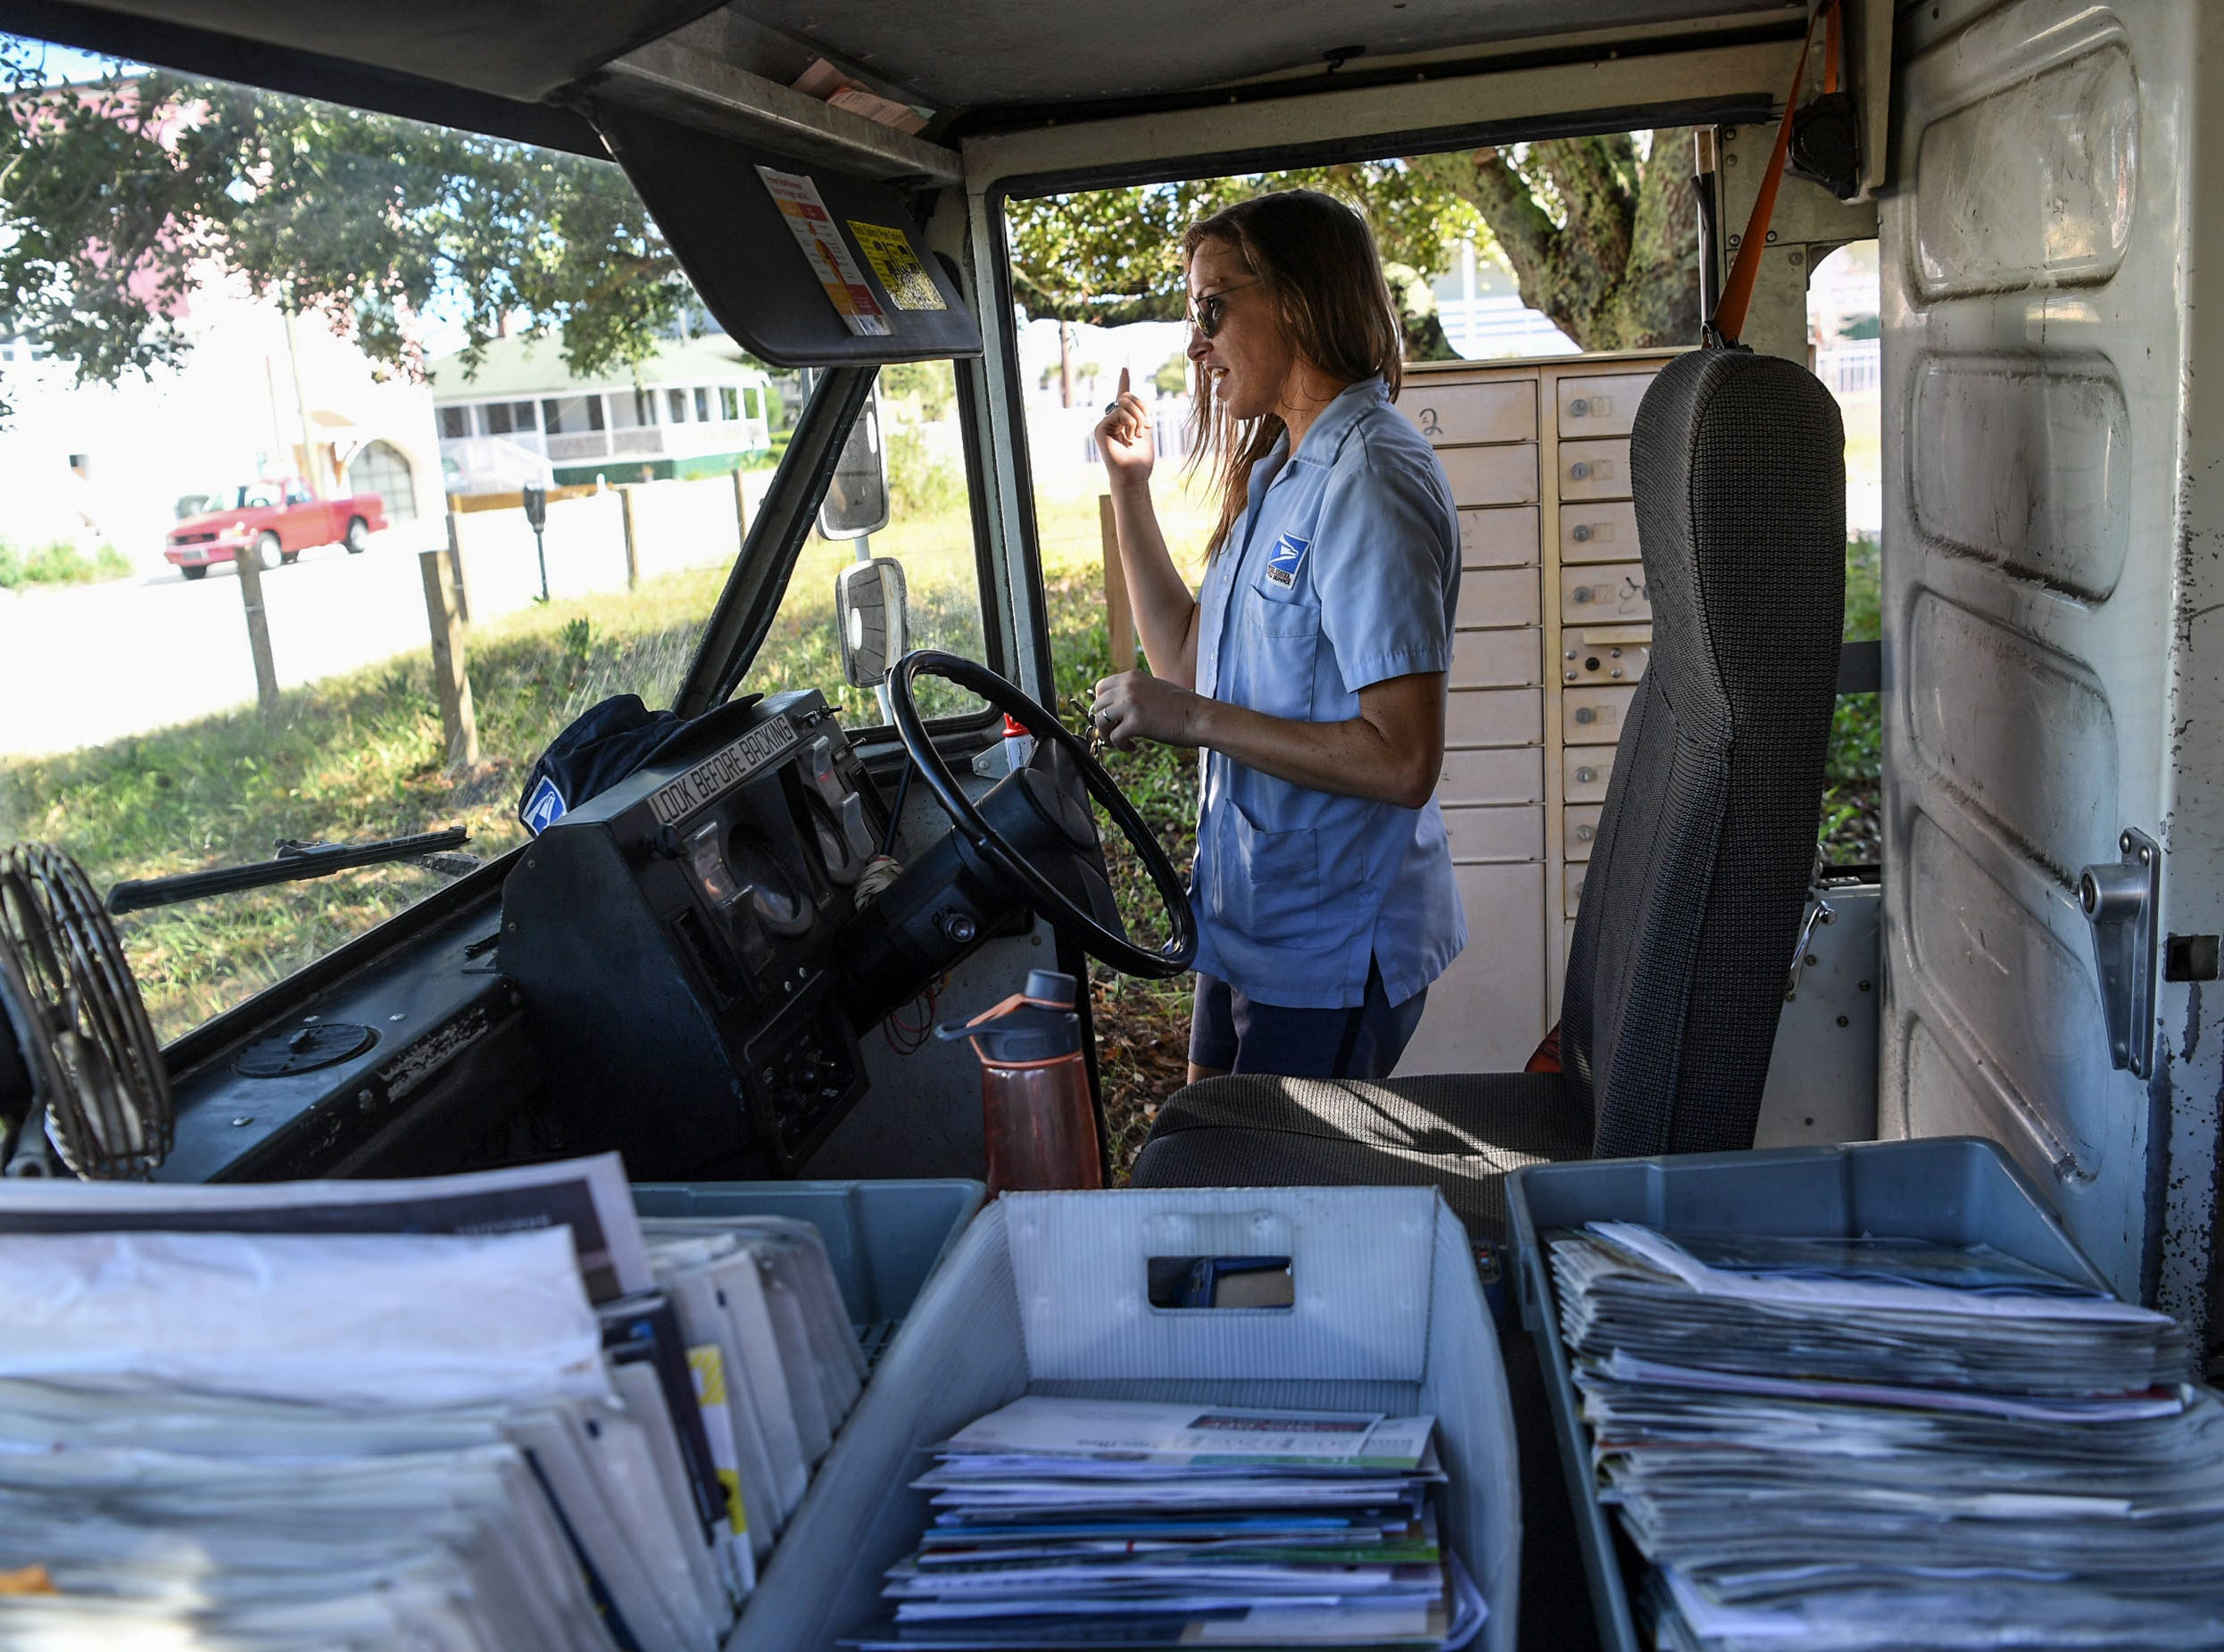 U.S. Postal Carrier Lindsey Fox delivers mail for the last day before Hurricane Florence, at Wrigtsville Beach in Wilmington, North Carolina on Wednesday, September 12, 2018.  (Ken Ruinard / Greenville News / Gannett USA Today Network / 2018 )